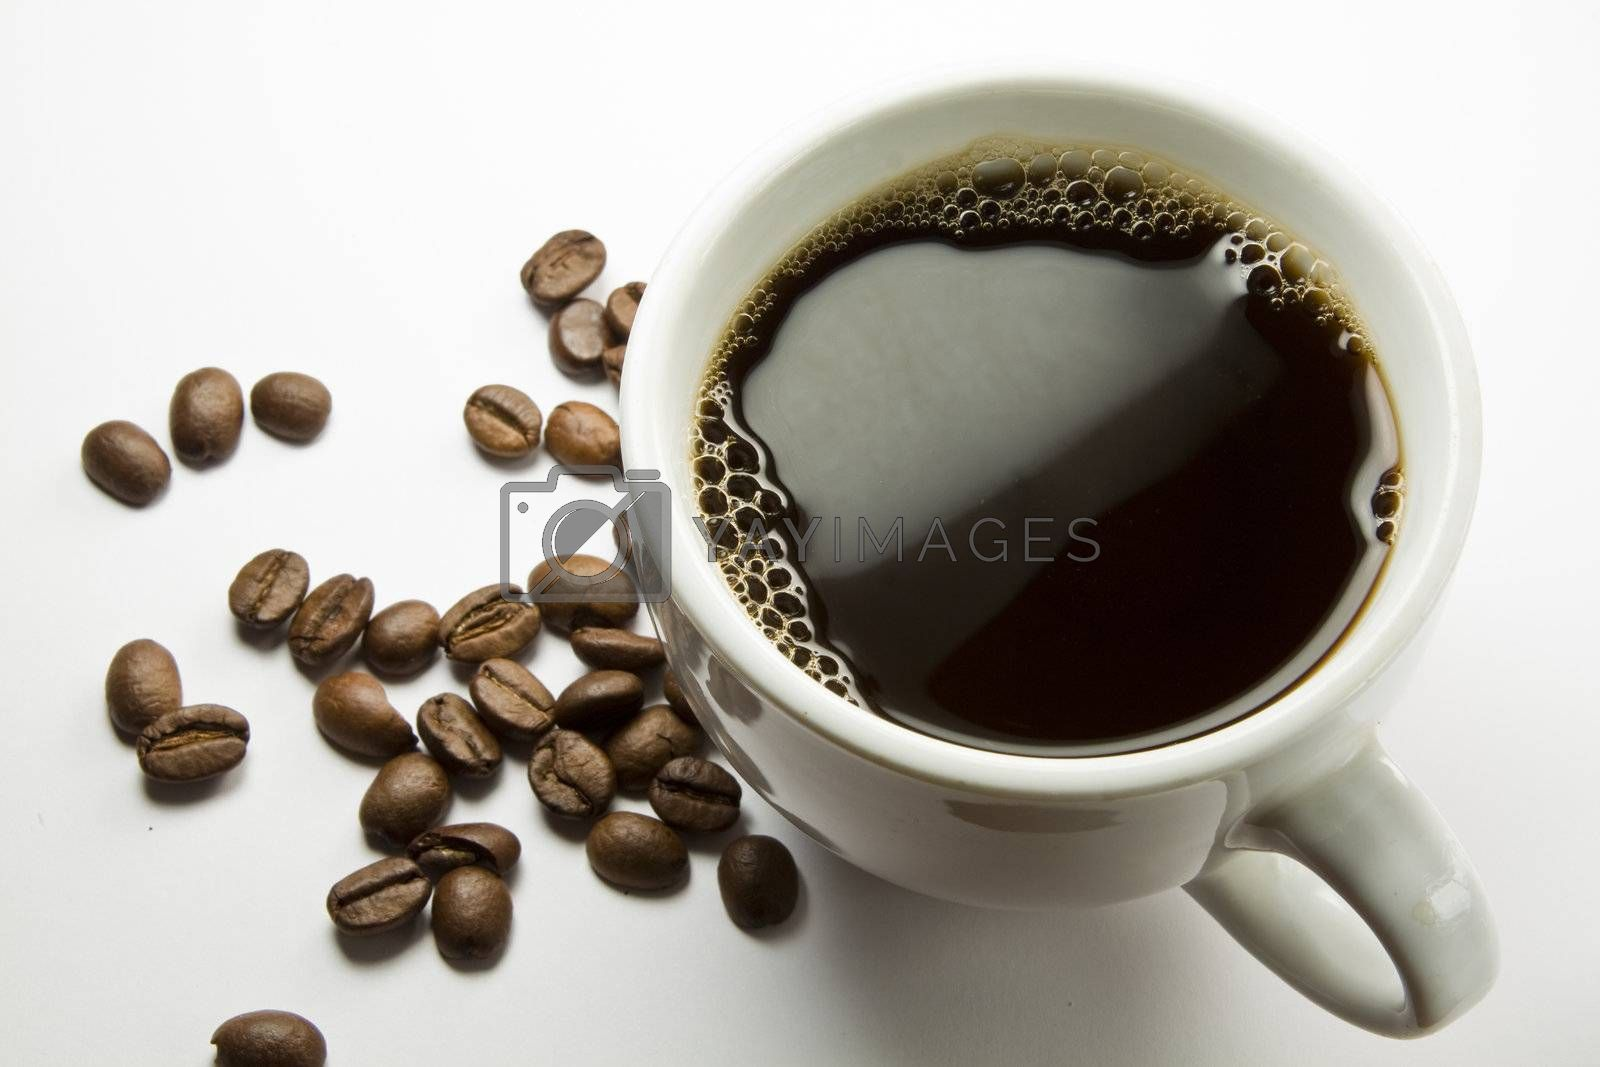 The cup of coffee and beans, isolated on white background.